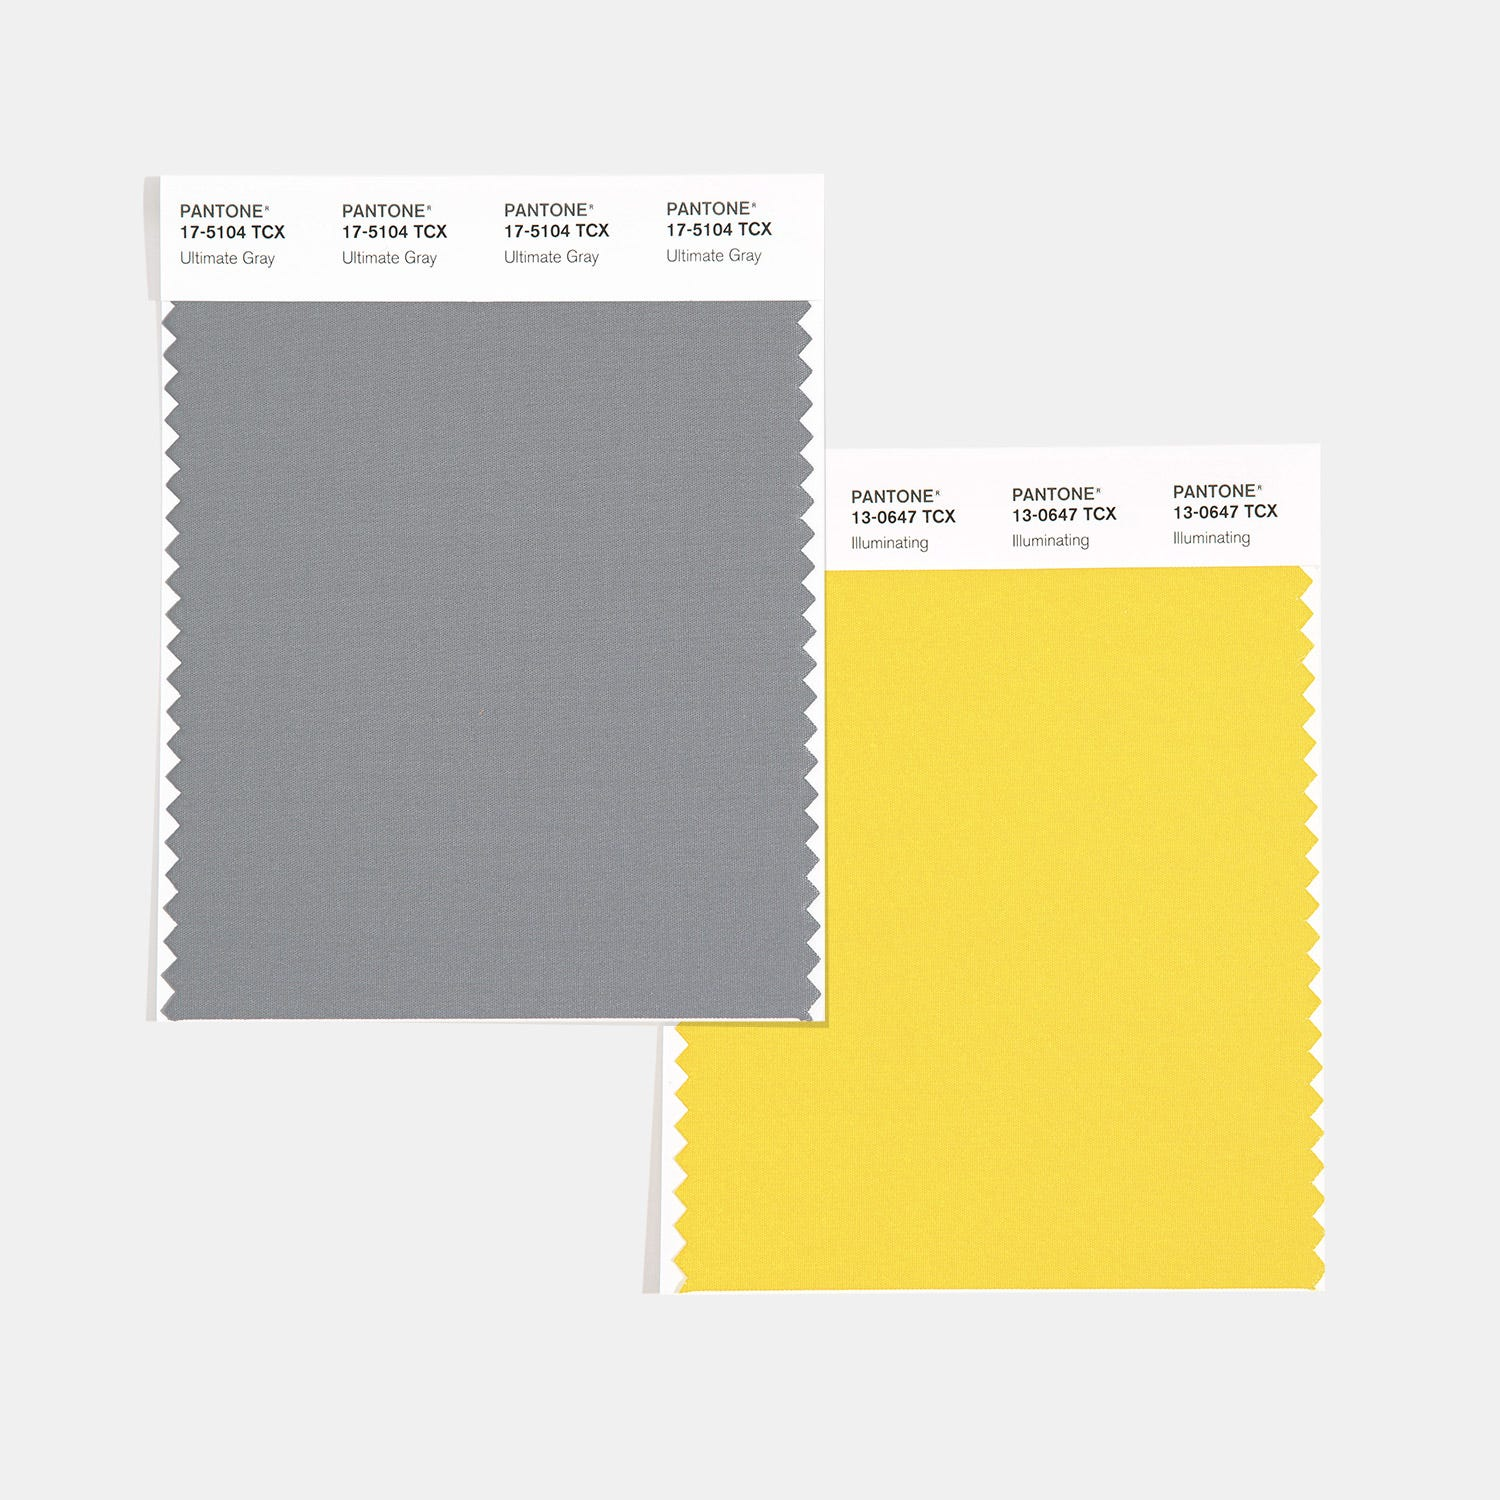 The Pantone Colors of the Year 2021 are{ }Ultimate Gray and Illuminating. (Image: Pantone)